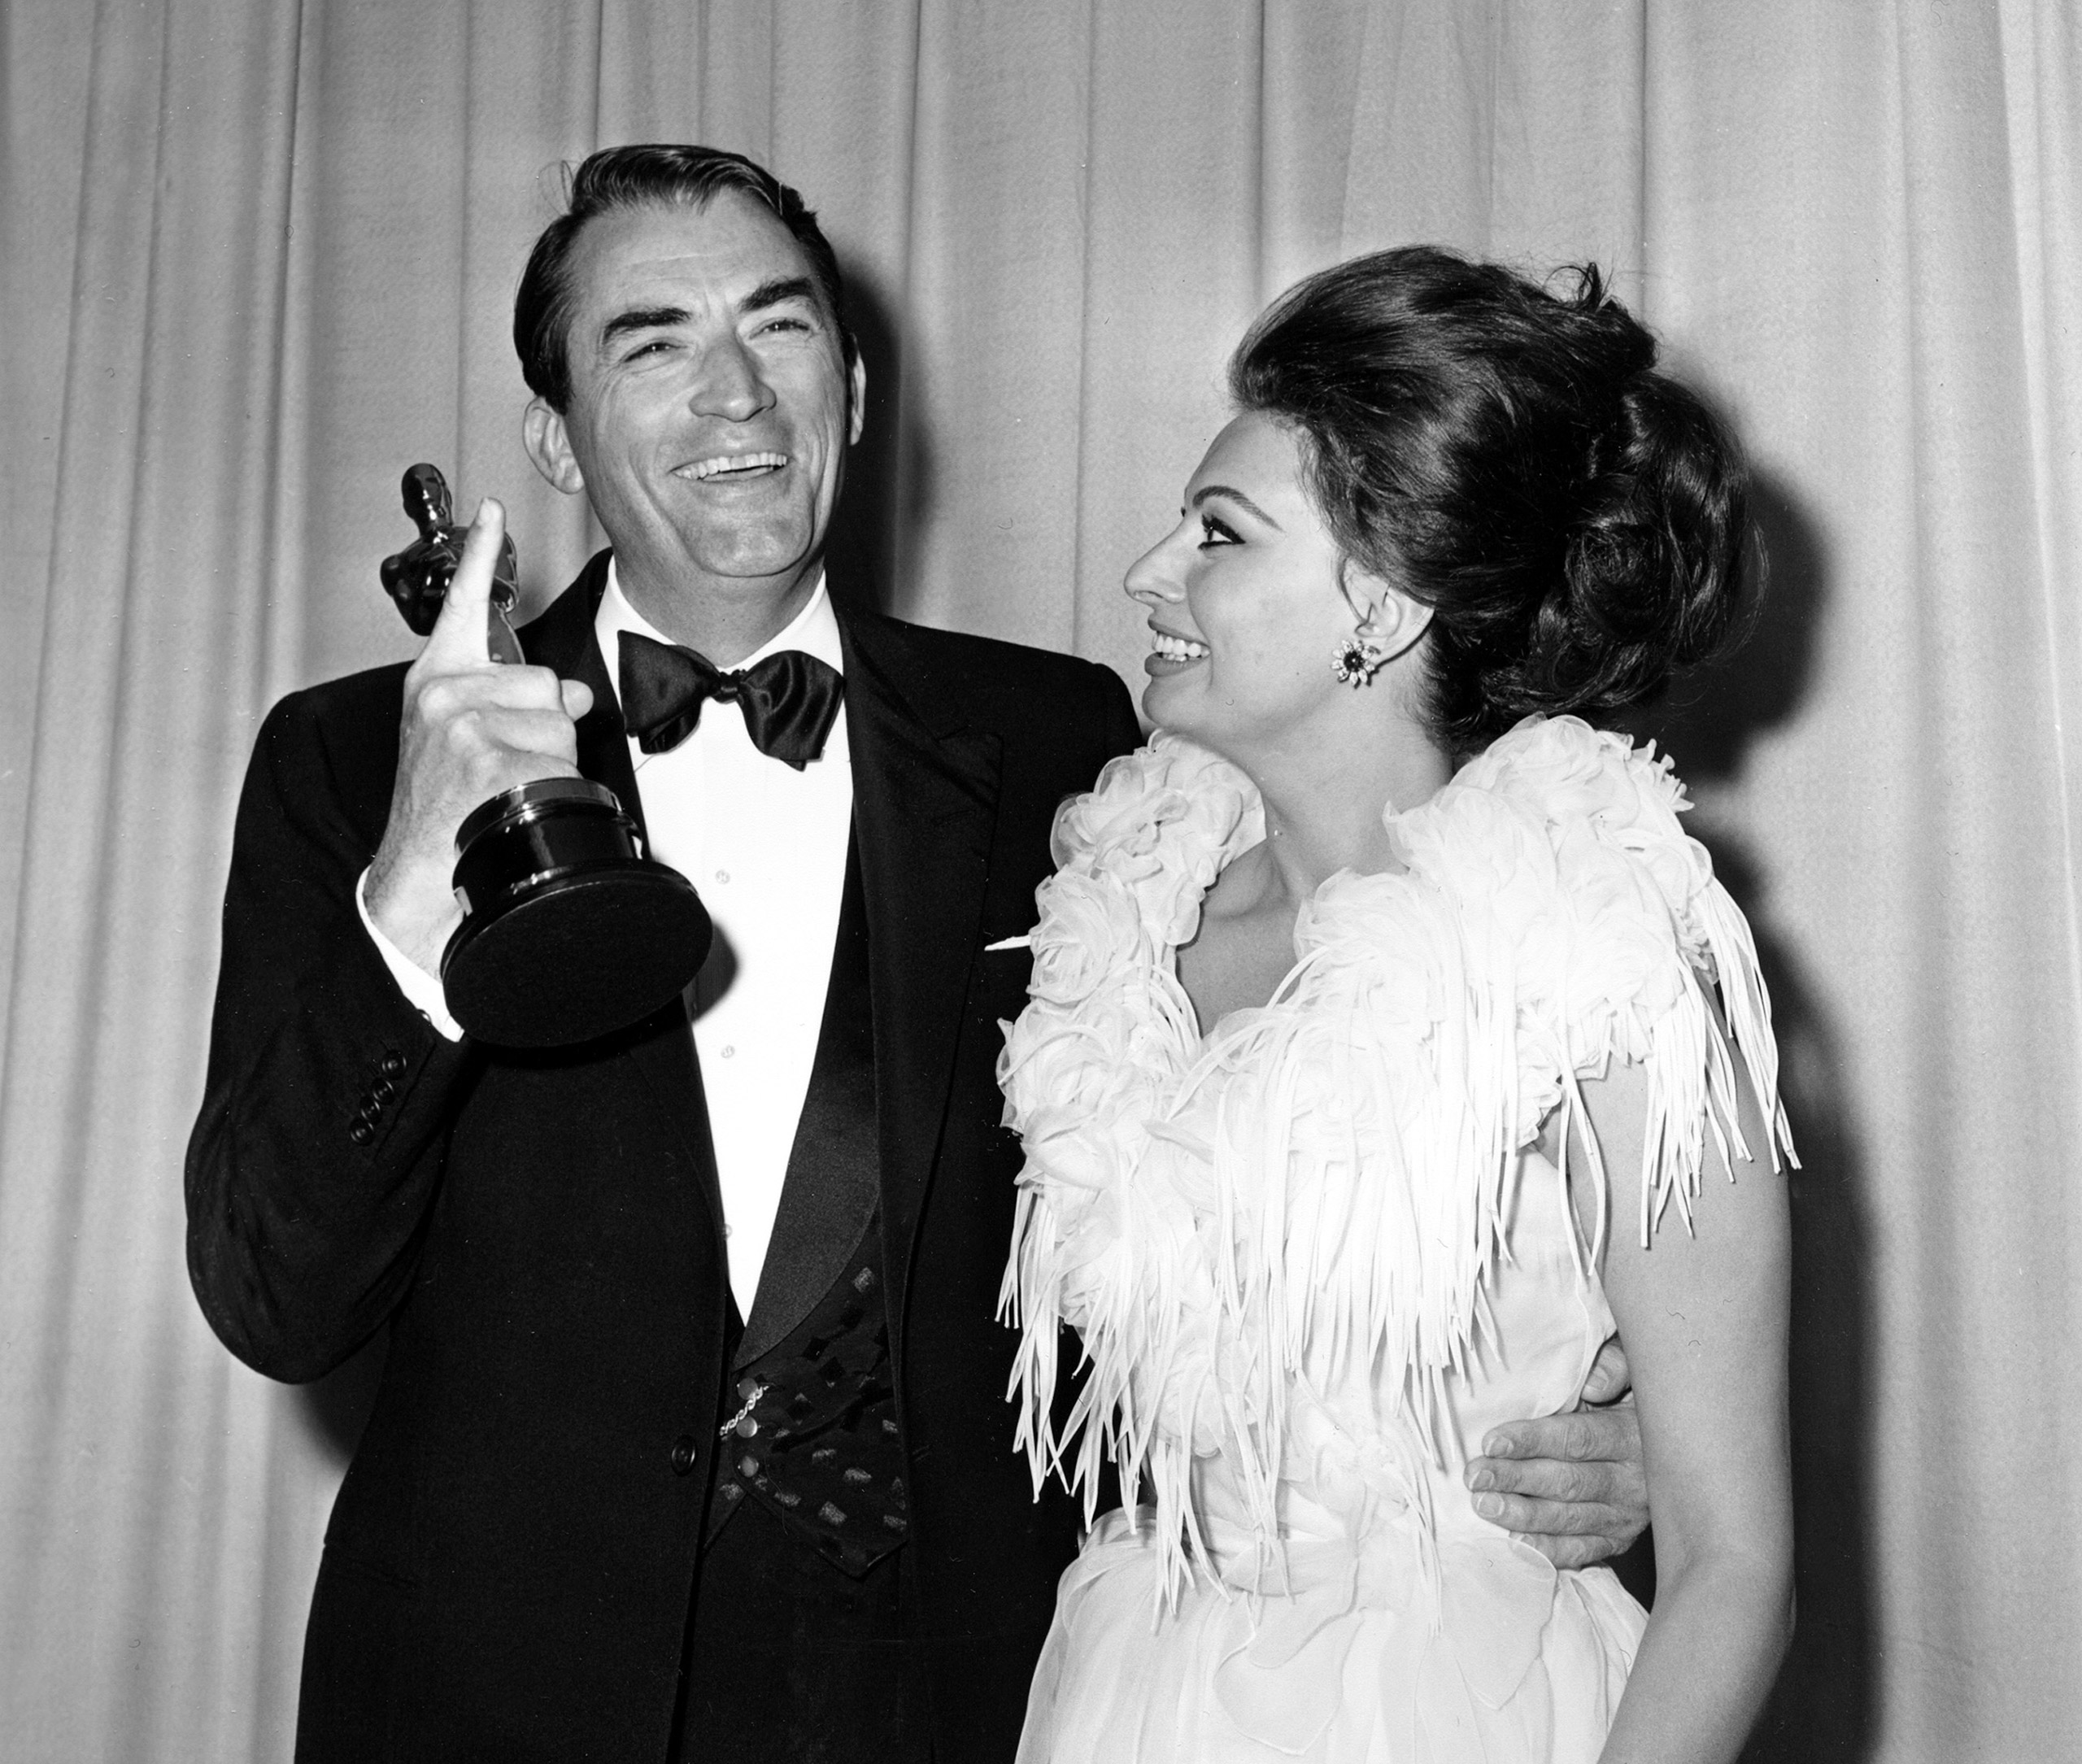 Gregory Peck with Sophia Loren at the Academy Awards, 1963.